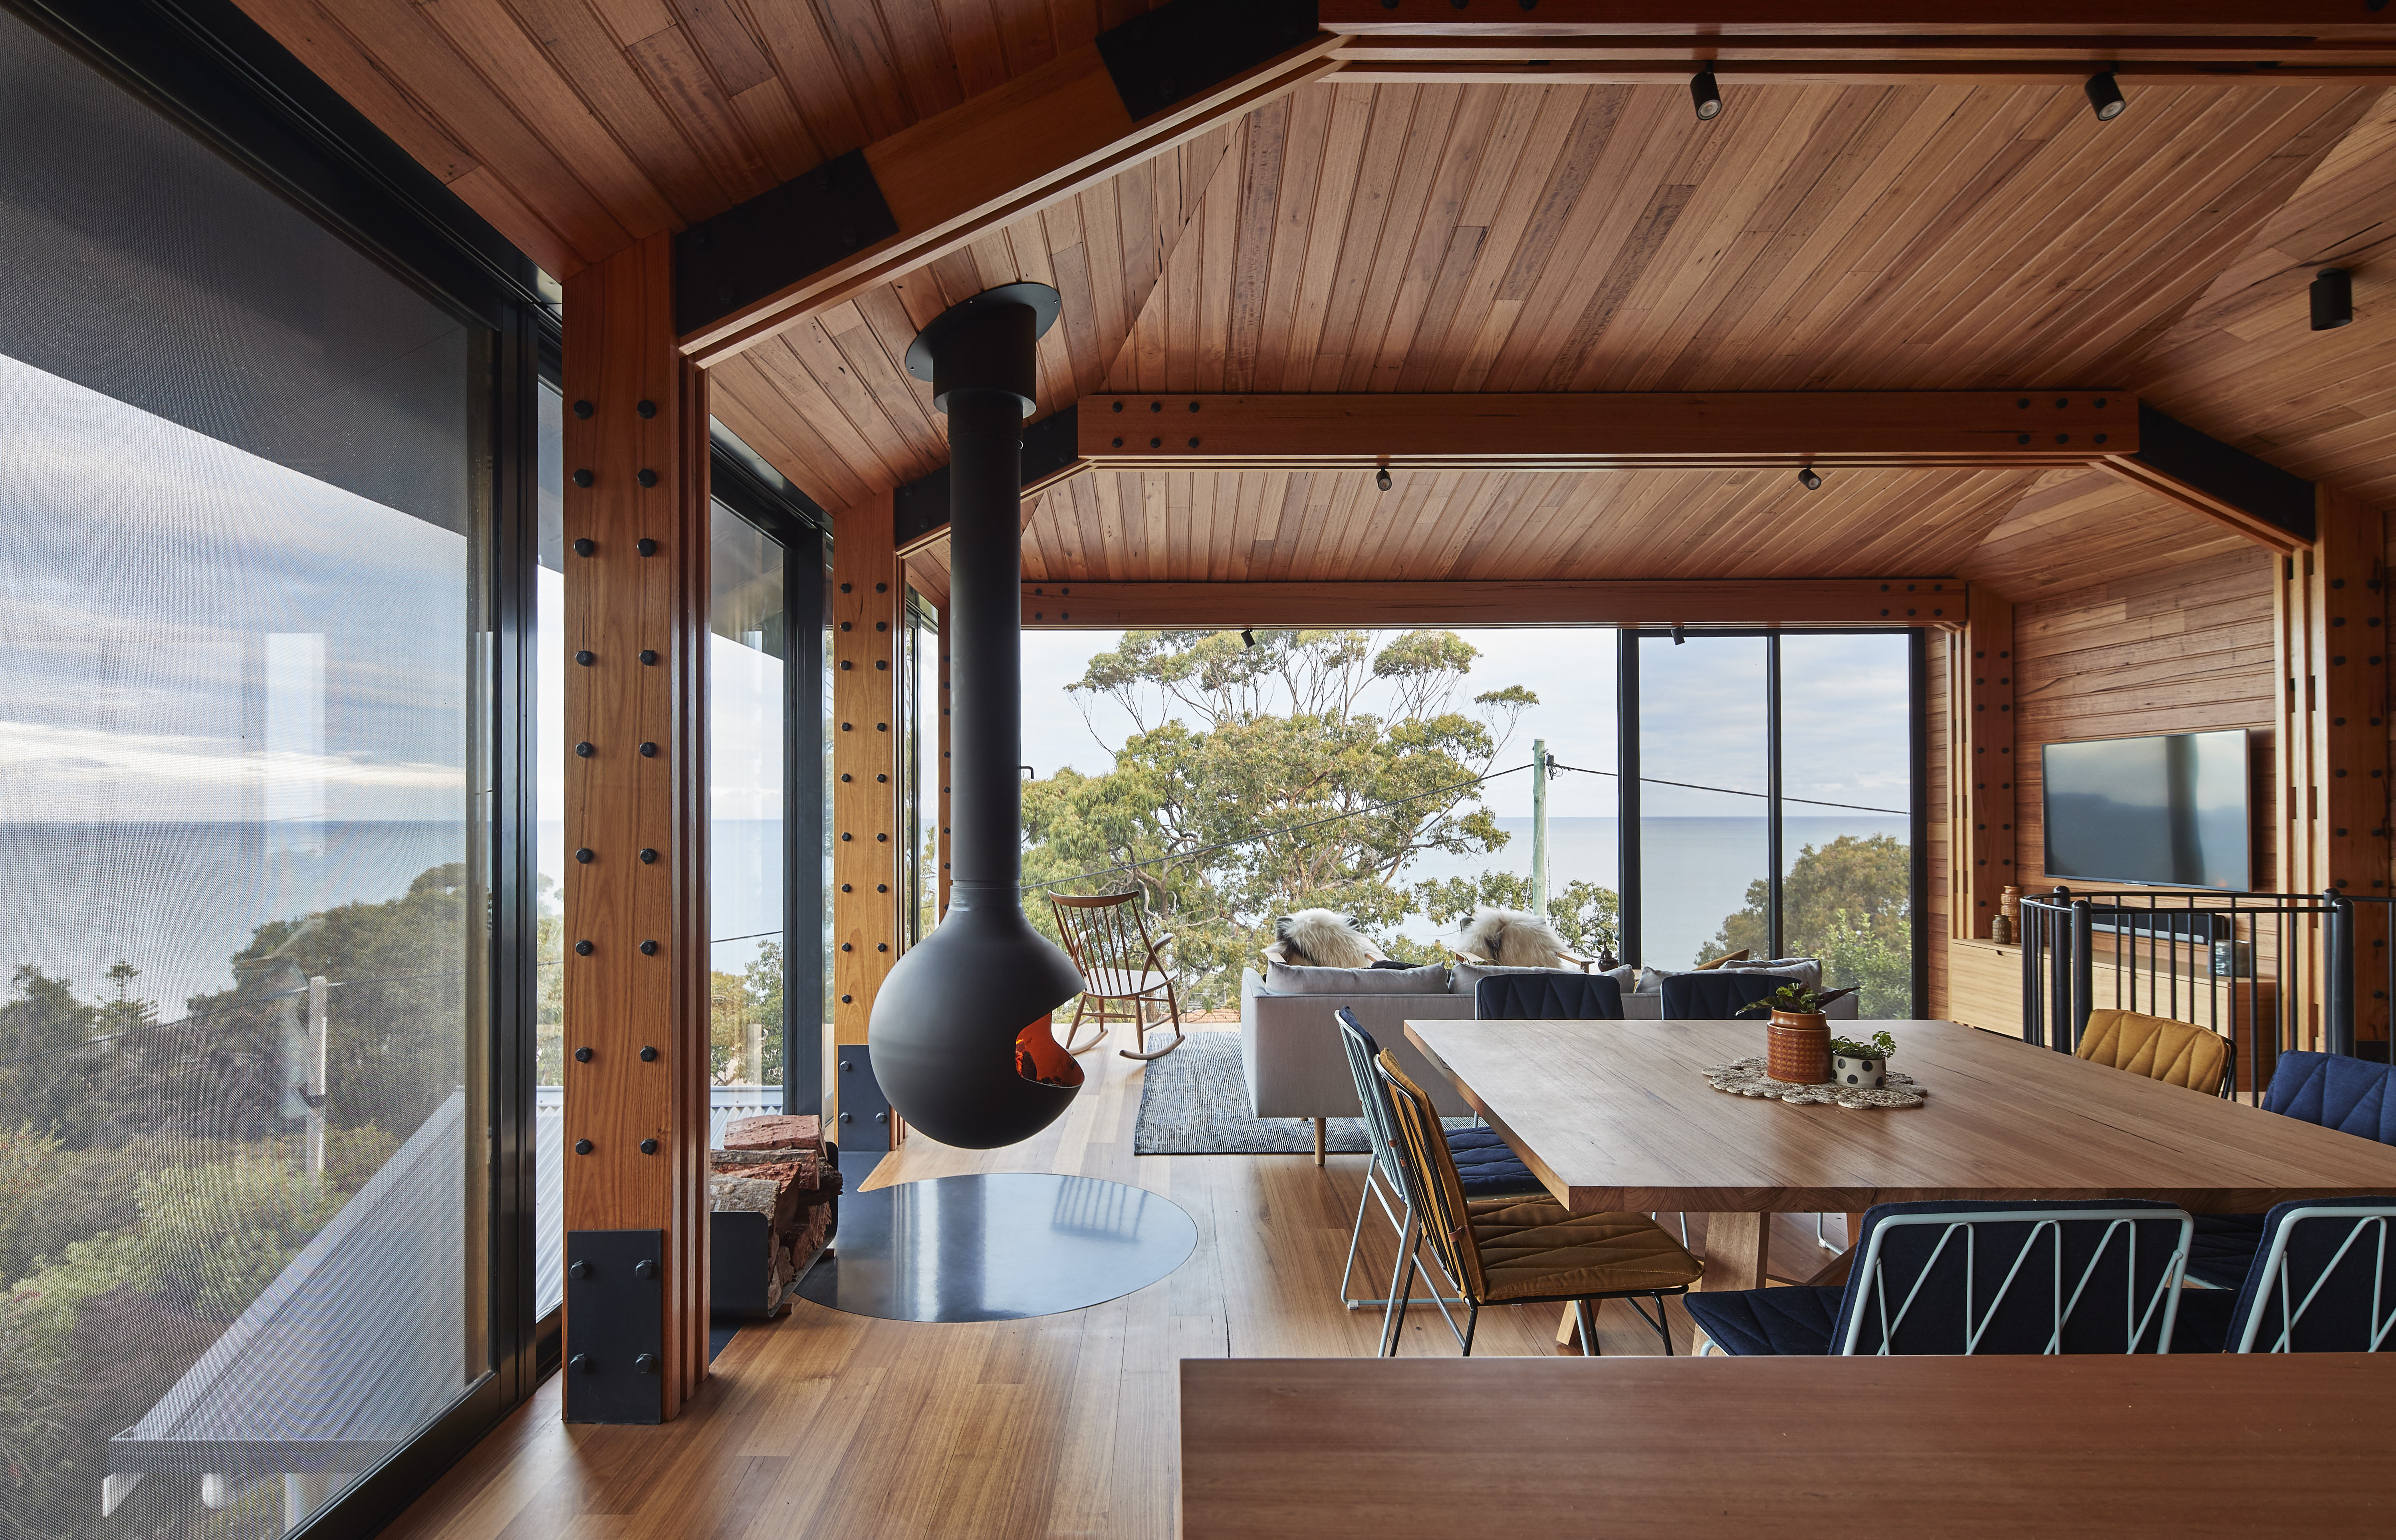 The australian interior design awards 2017 shortlist has been announced today with 48 stand out projects across australia nominated in the residential